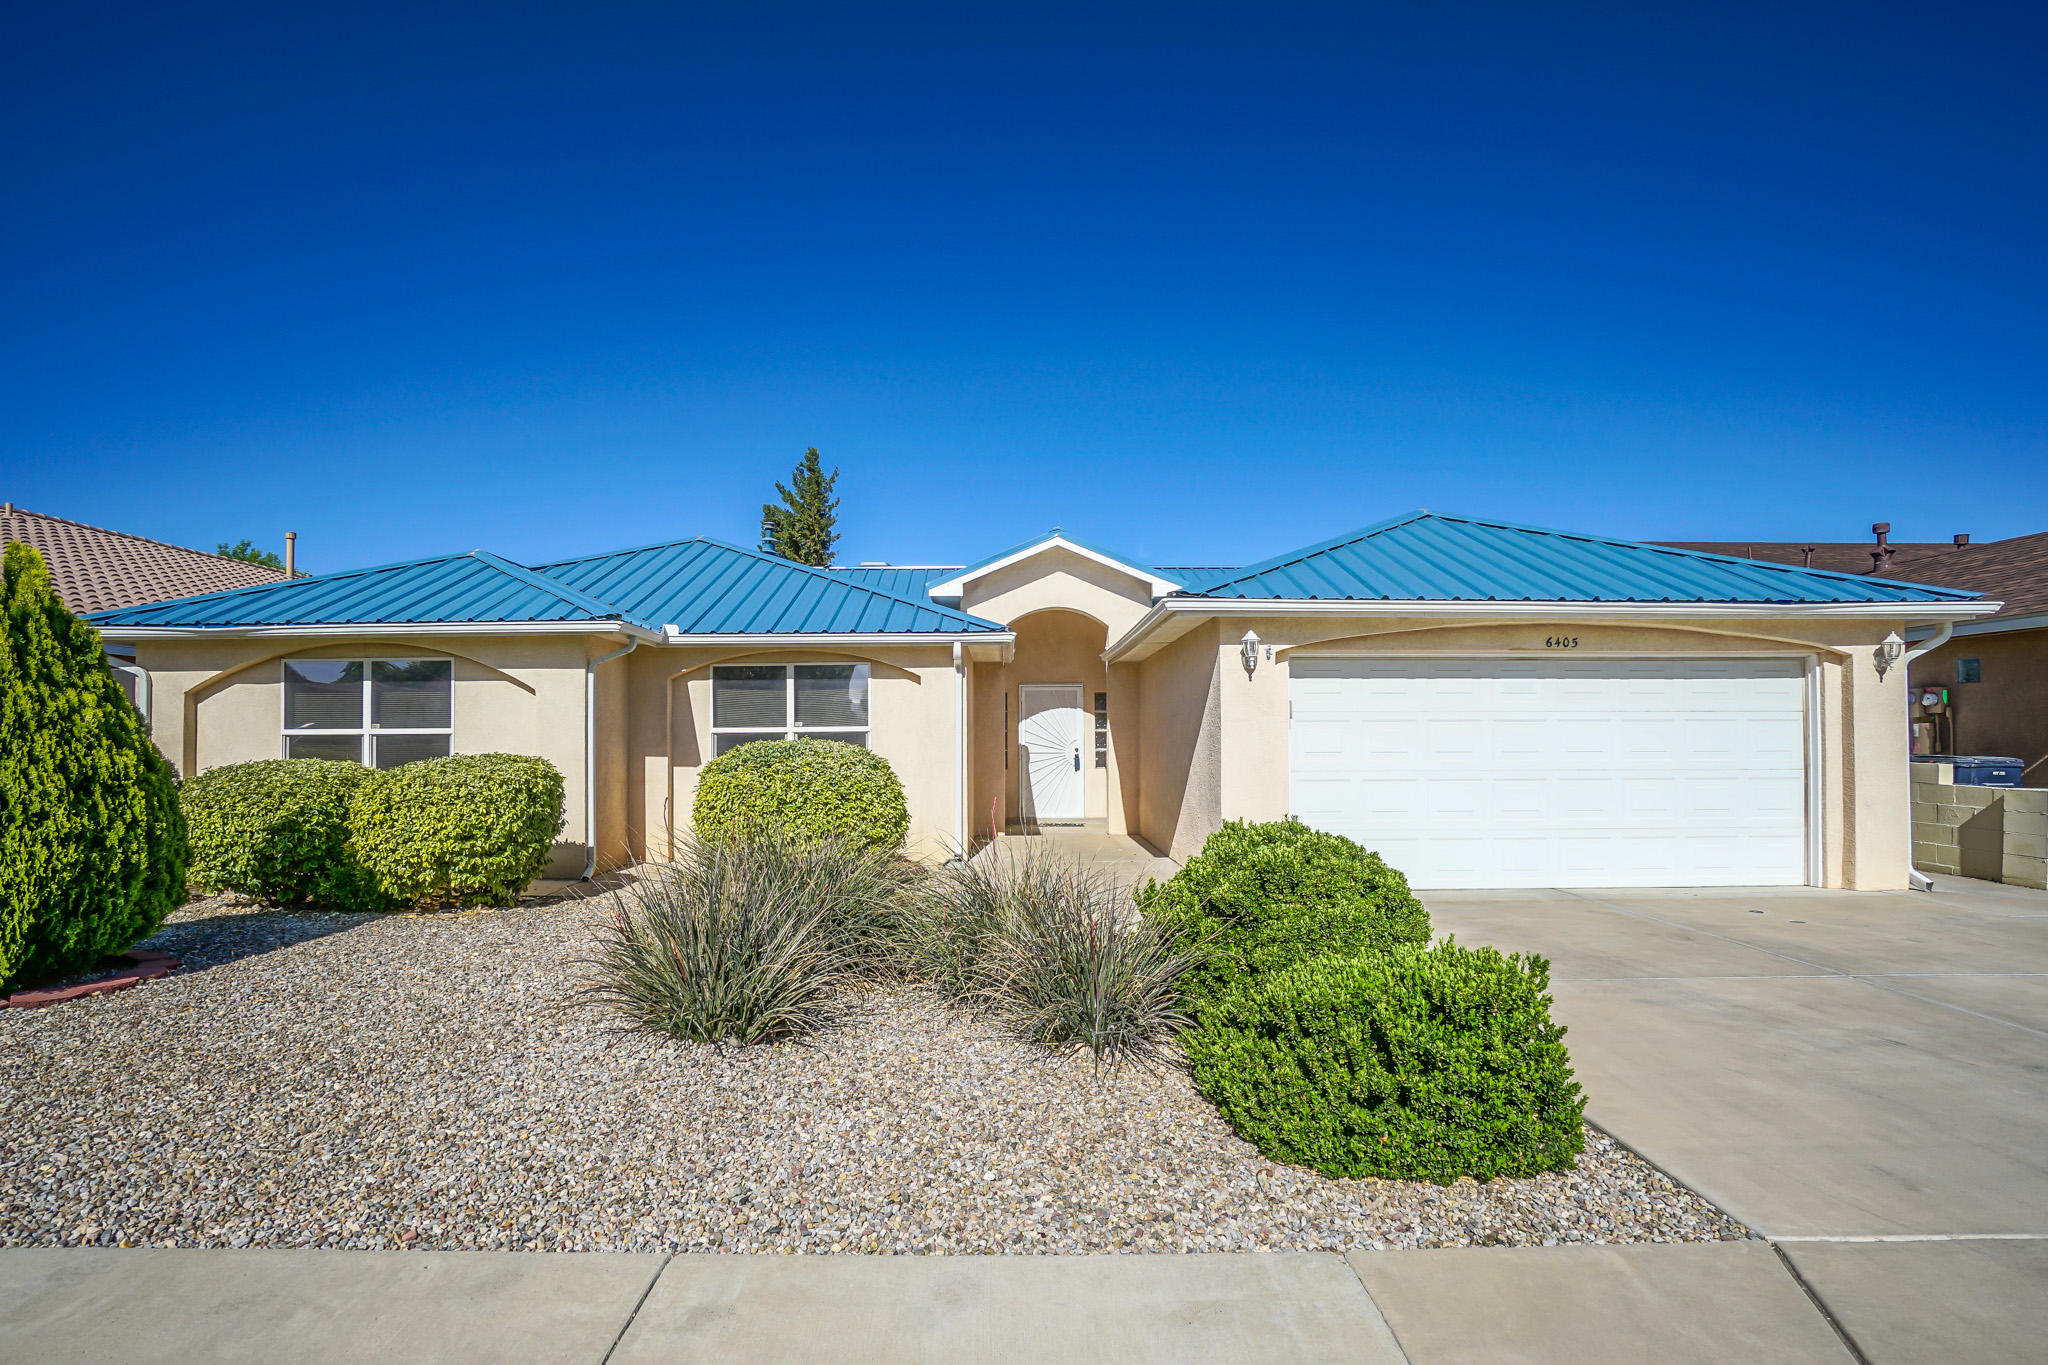 6405 NW Whiteman Drive, Northwest Albuquerque and Northwest Heights, New Mexico